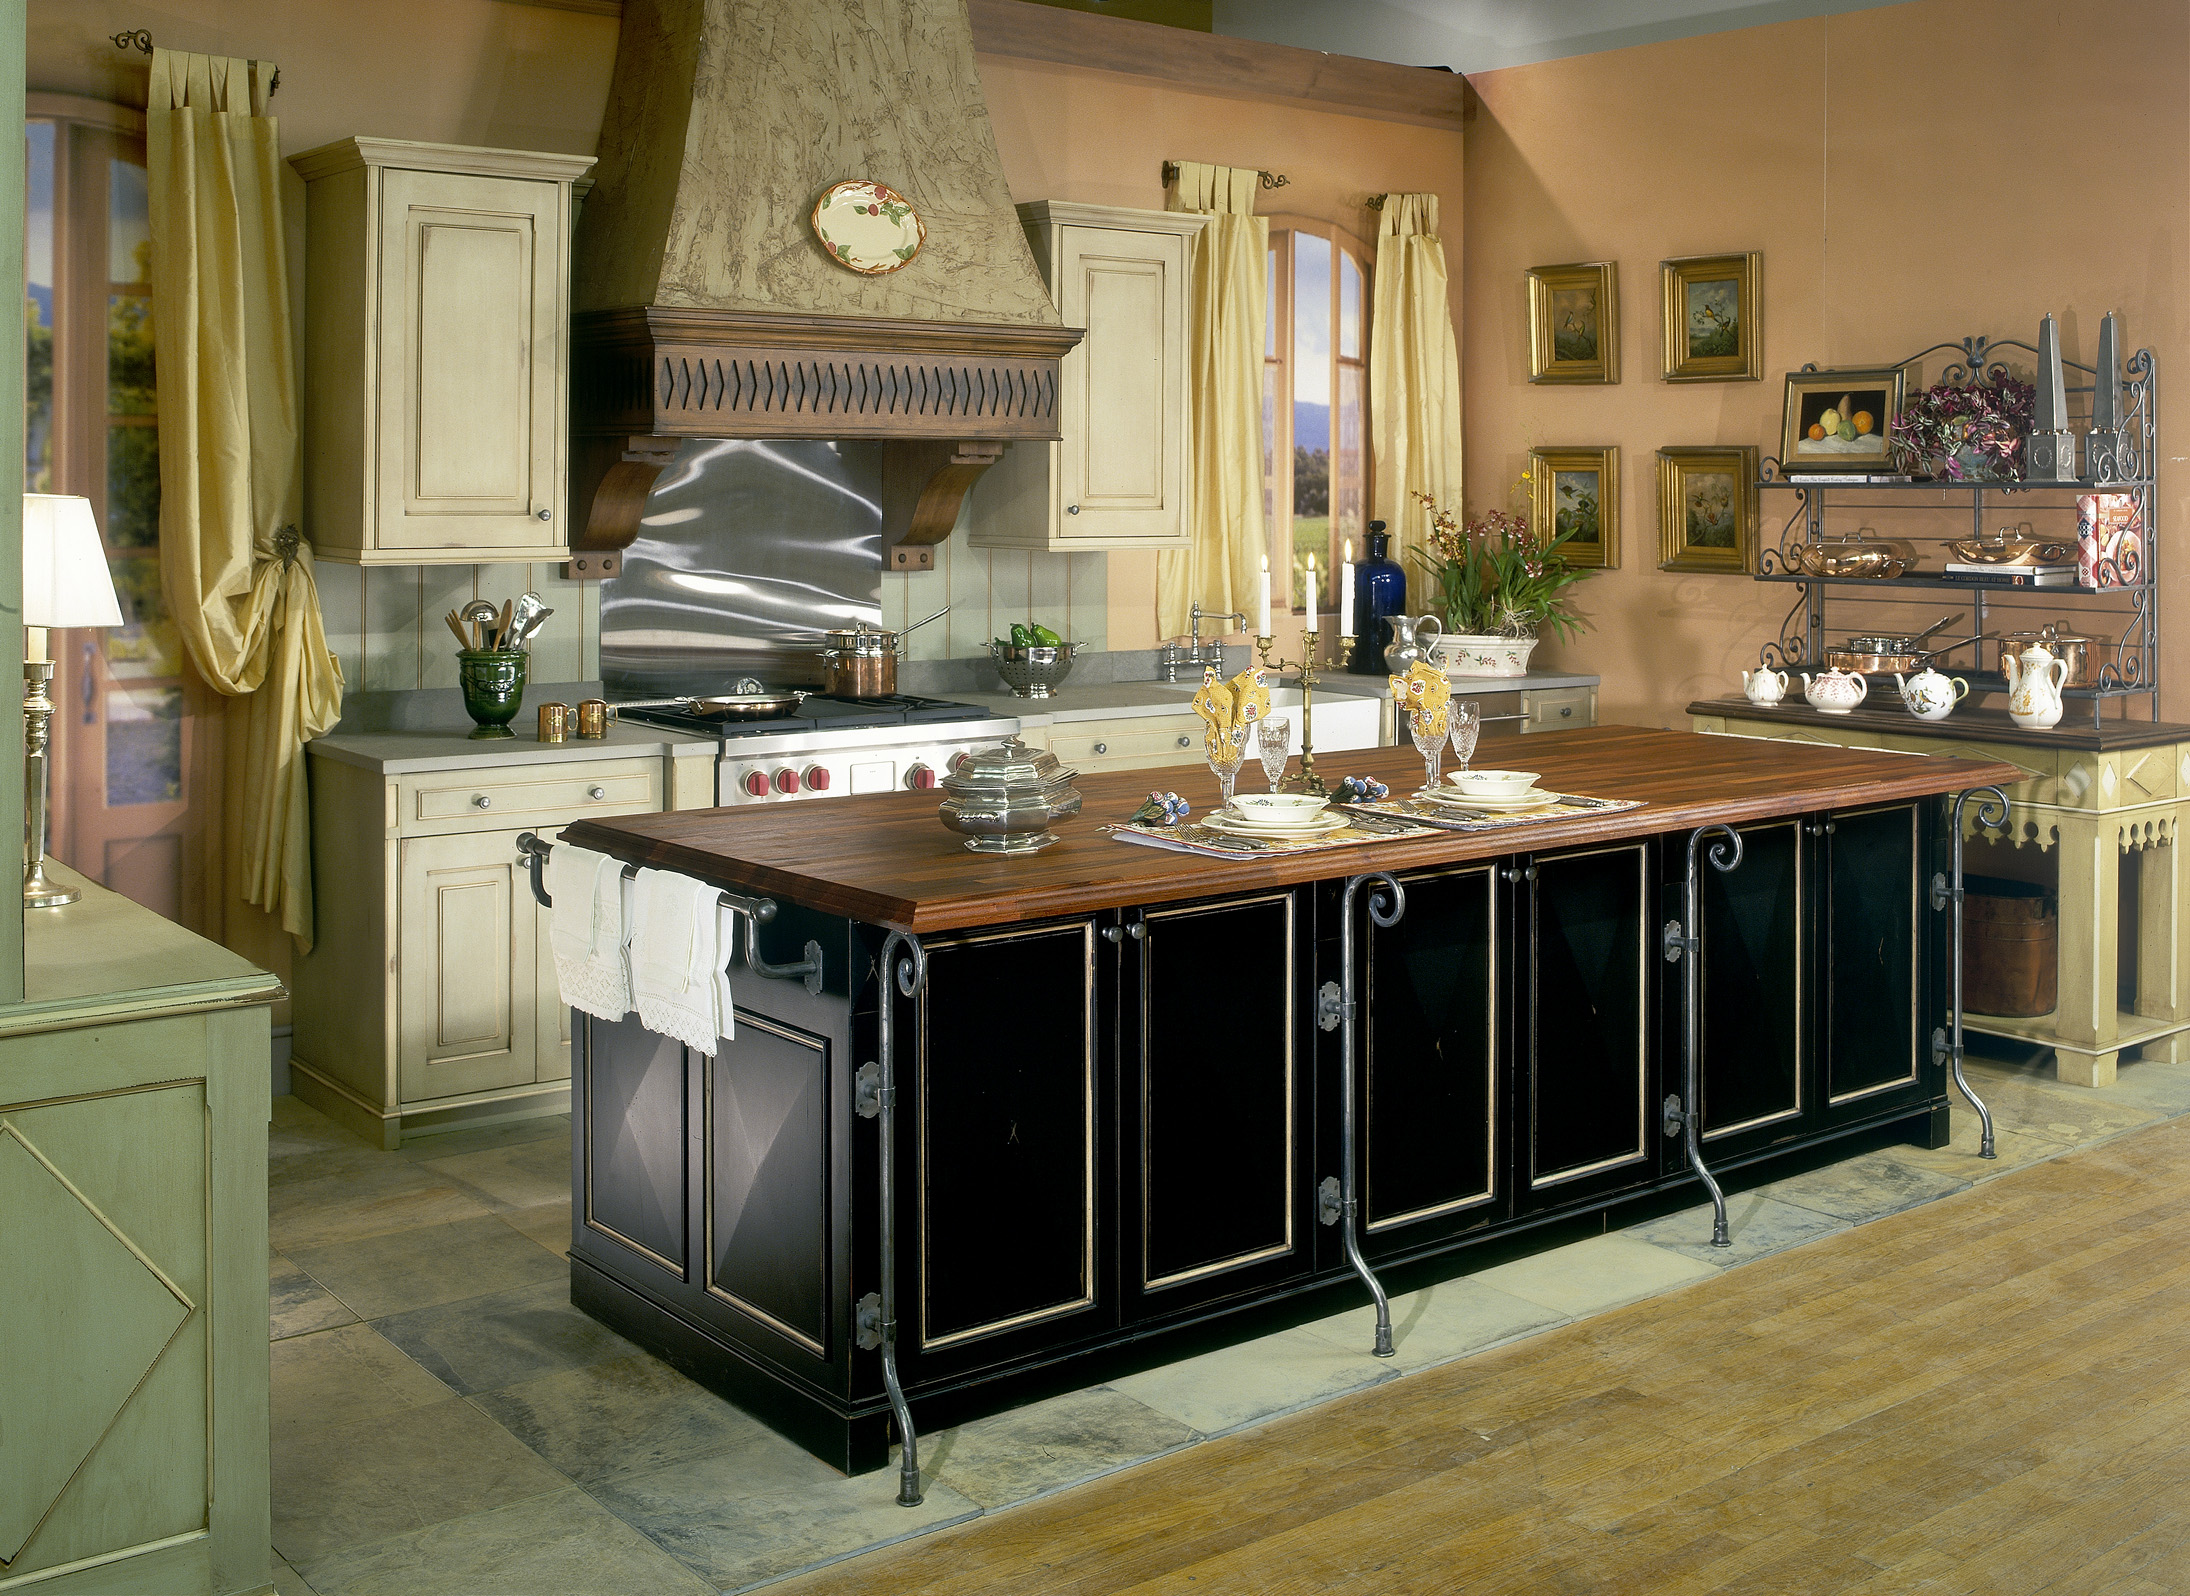 Country kitchen sets photo - 1